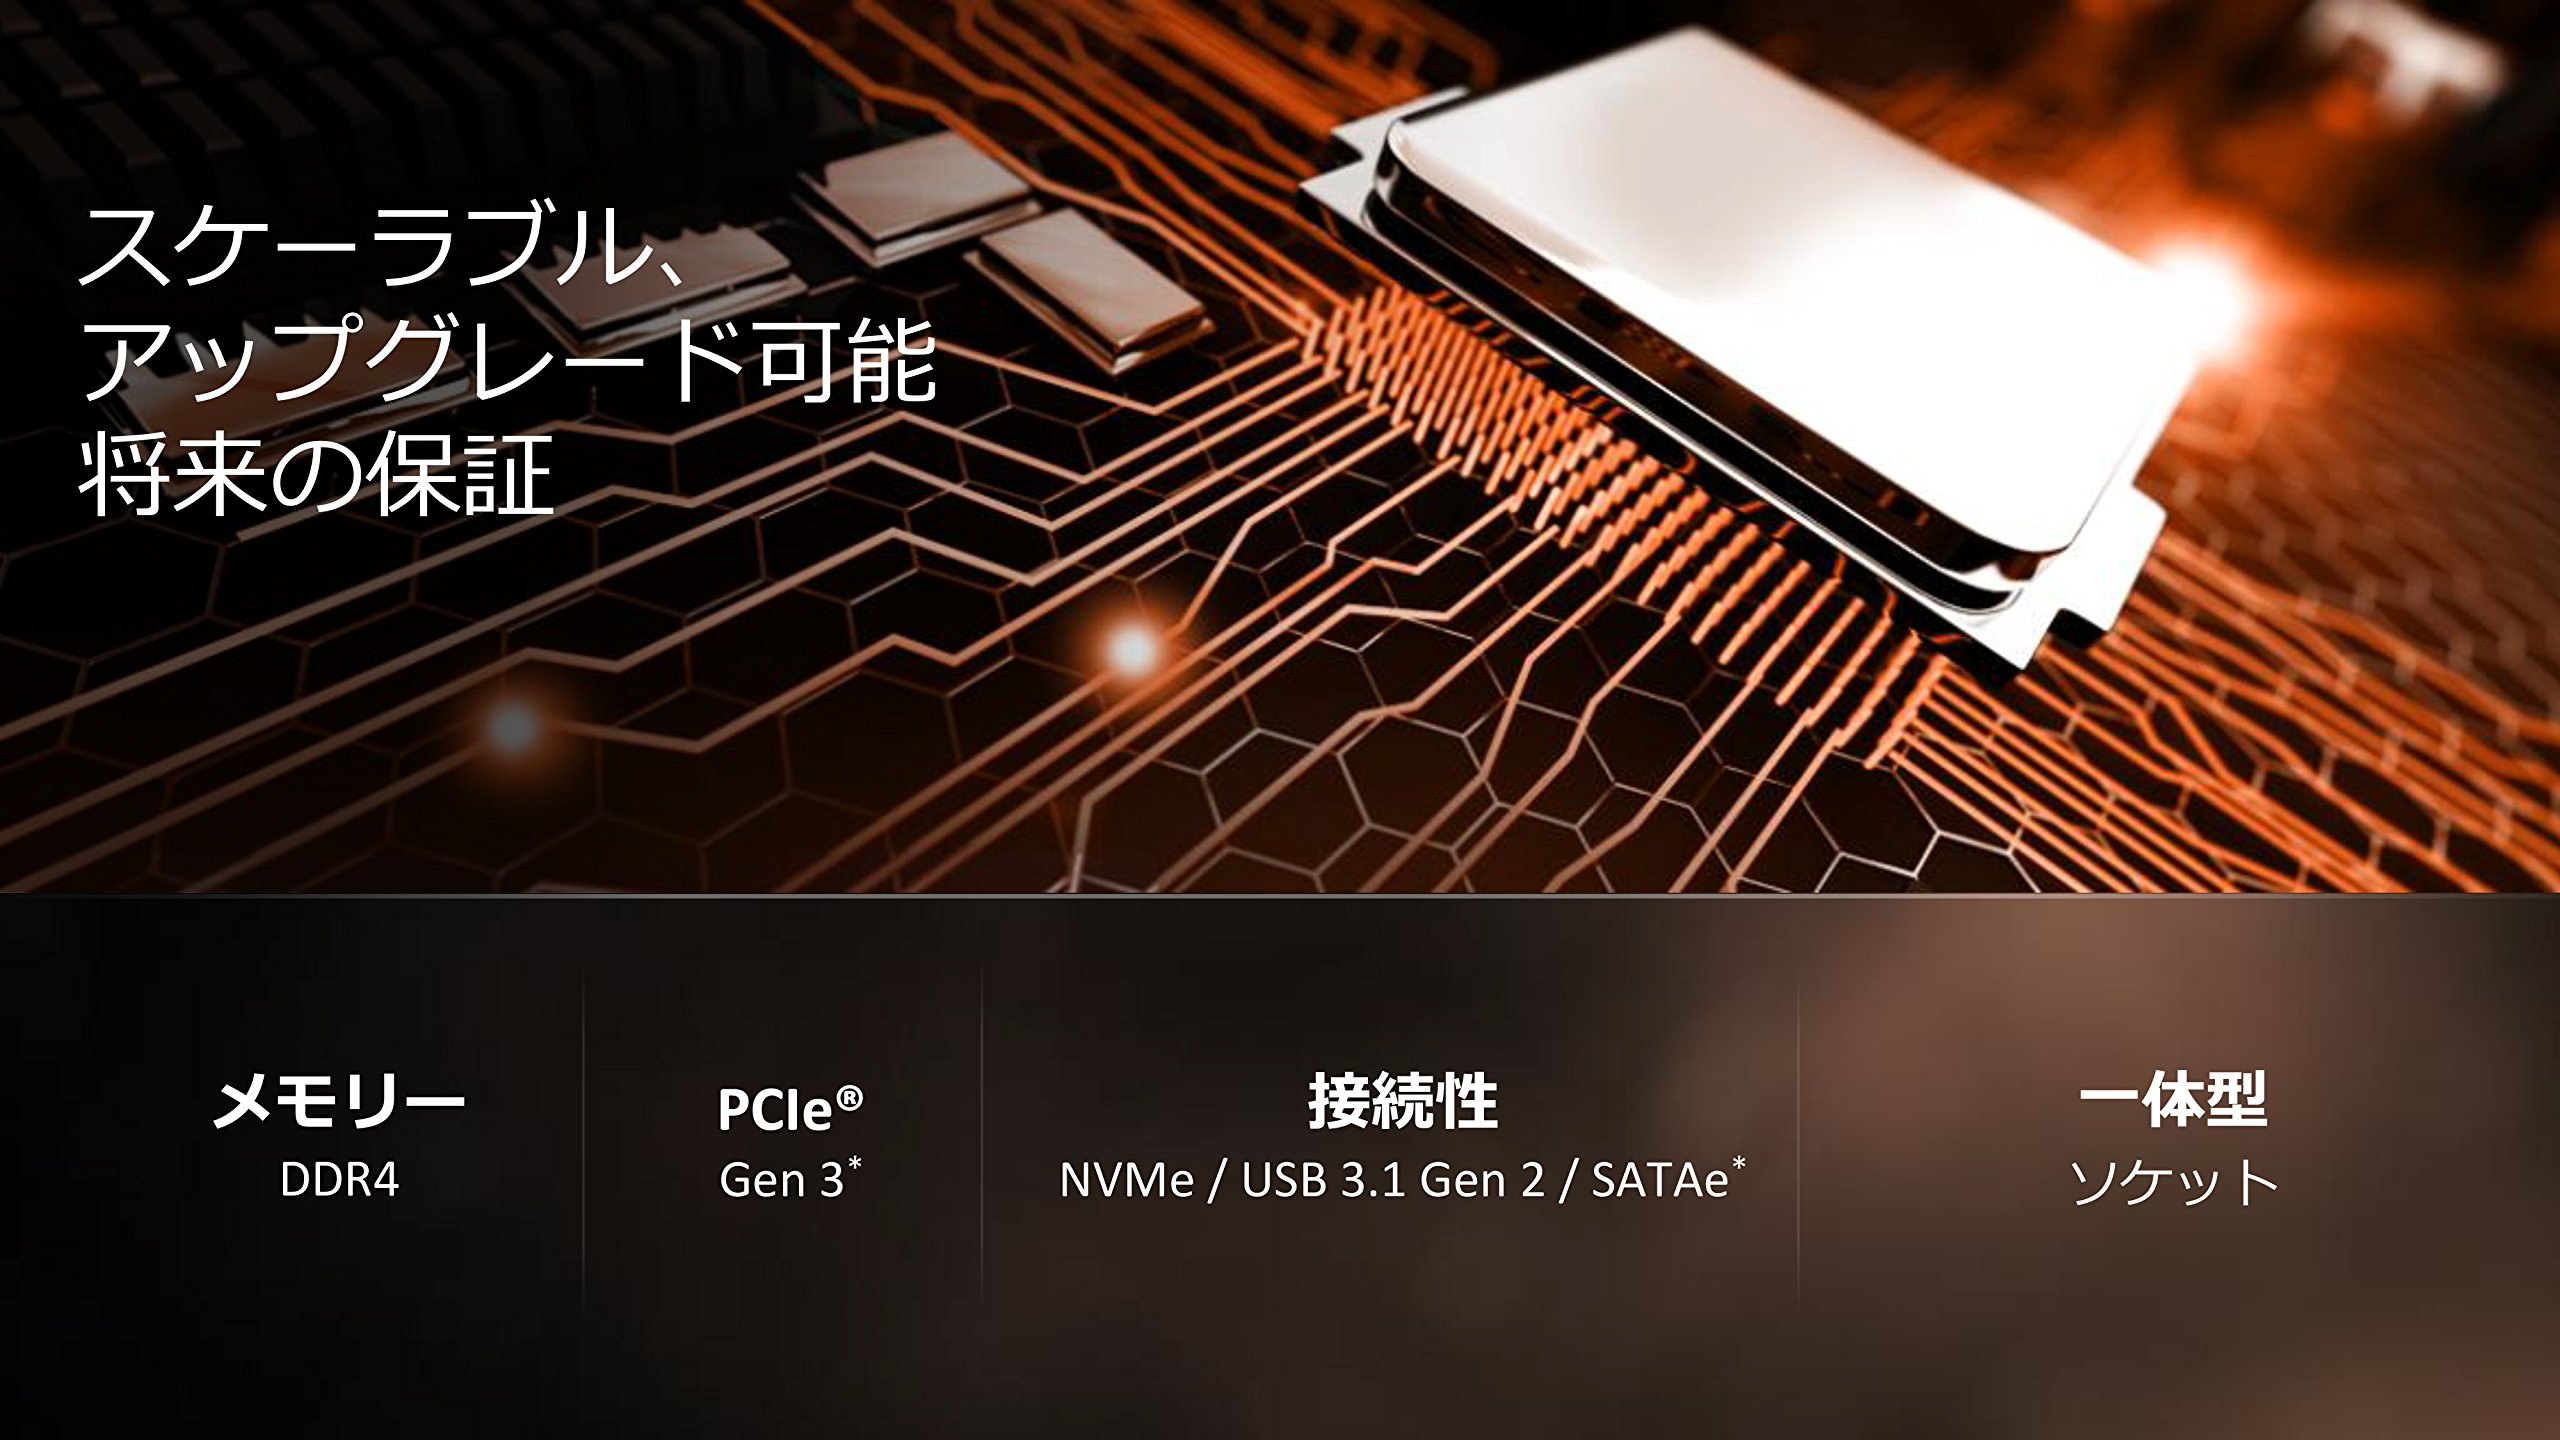 AMD Ryzen 5 1600X Processor (YD160XBCAEWOF) by AMD